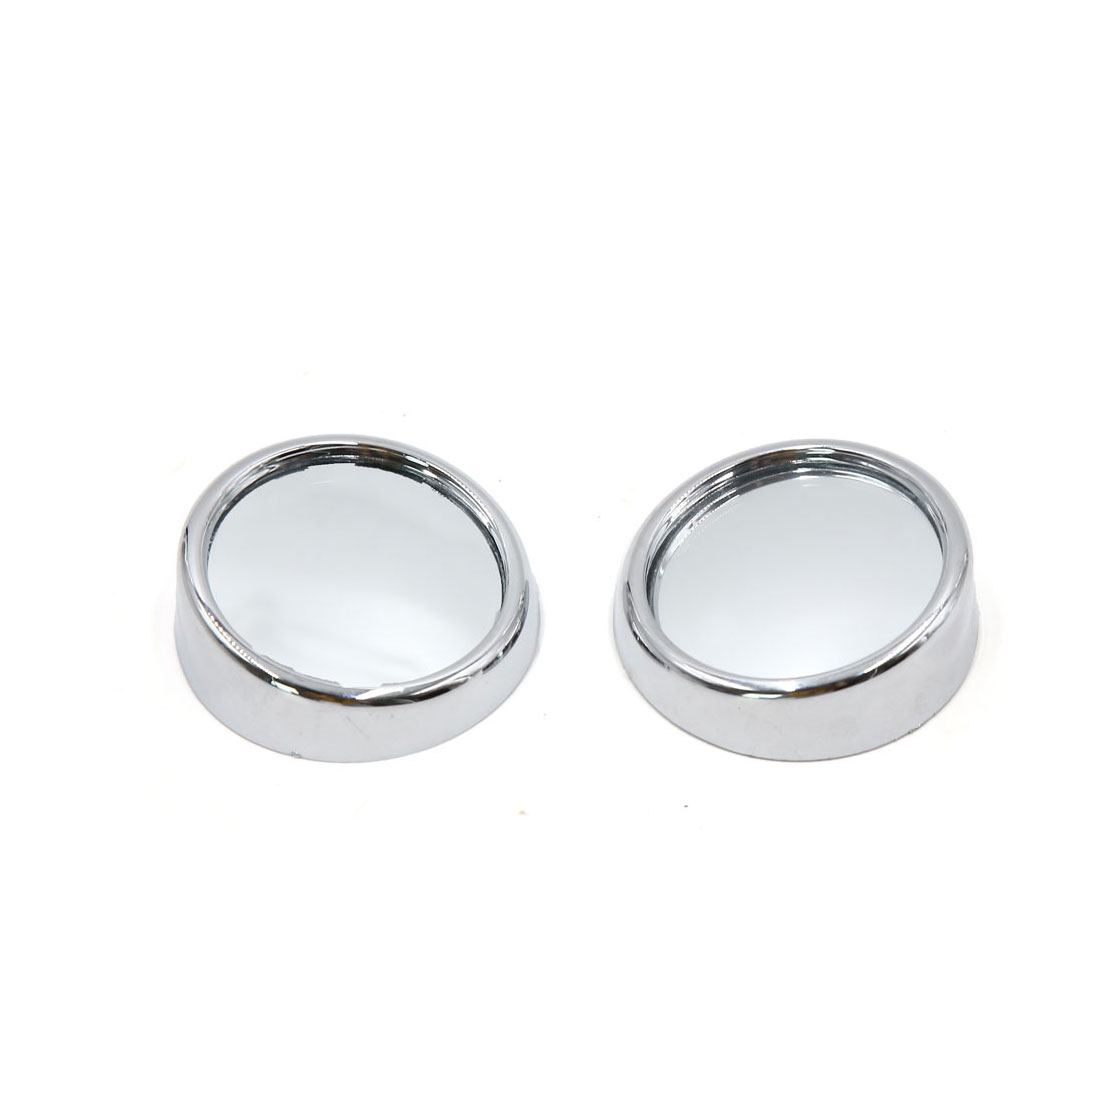 2pcs 47mm Chrome Silver Tone Car Stick-on Wide Angle Convex Blind Spot Mirror